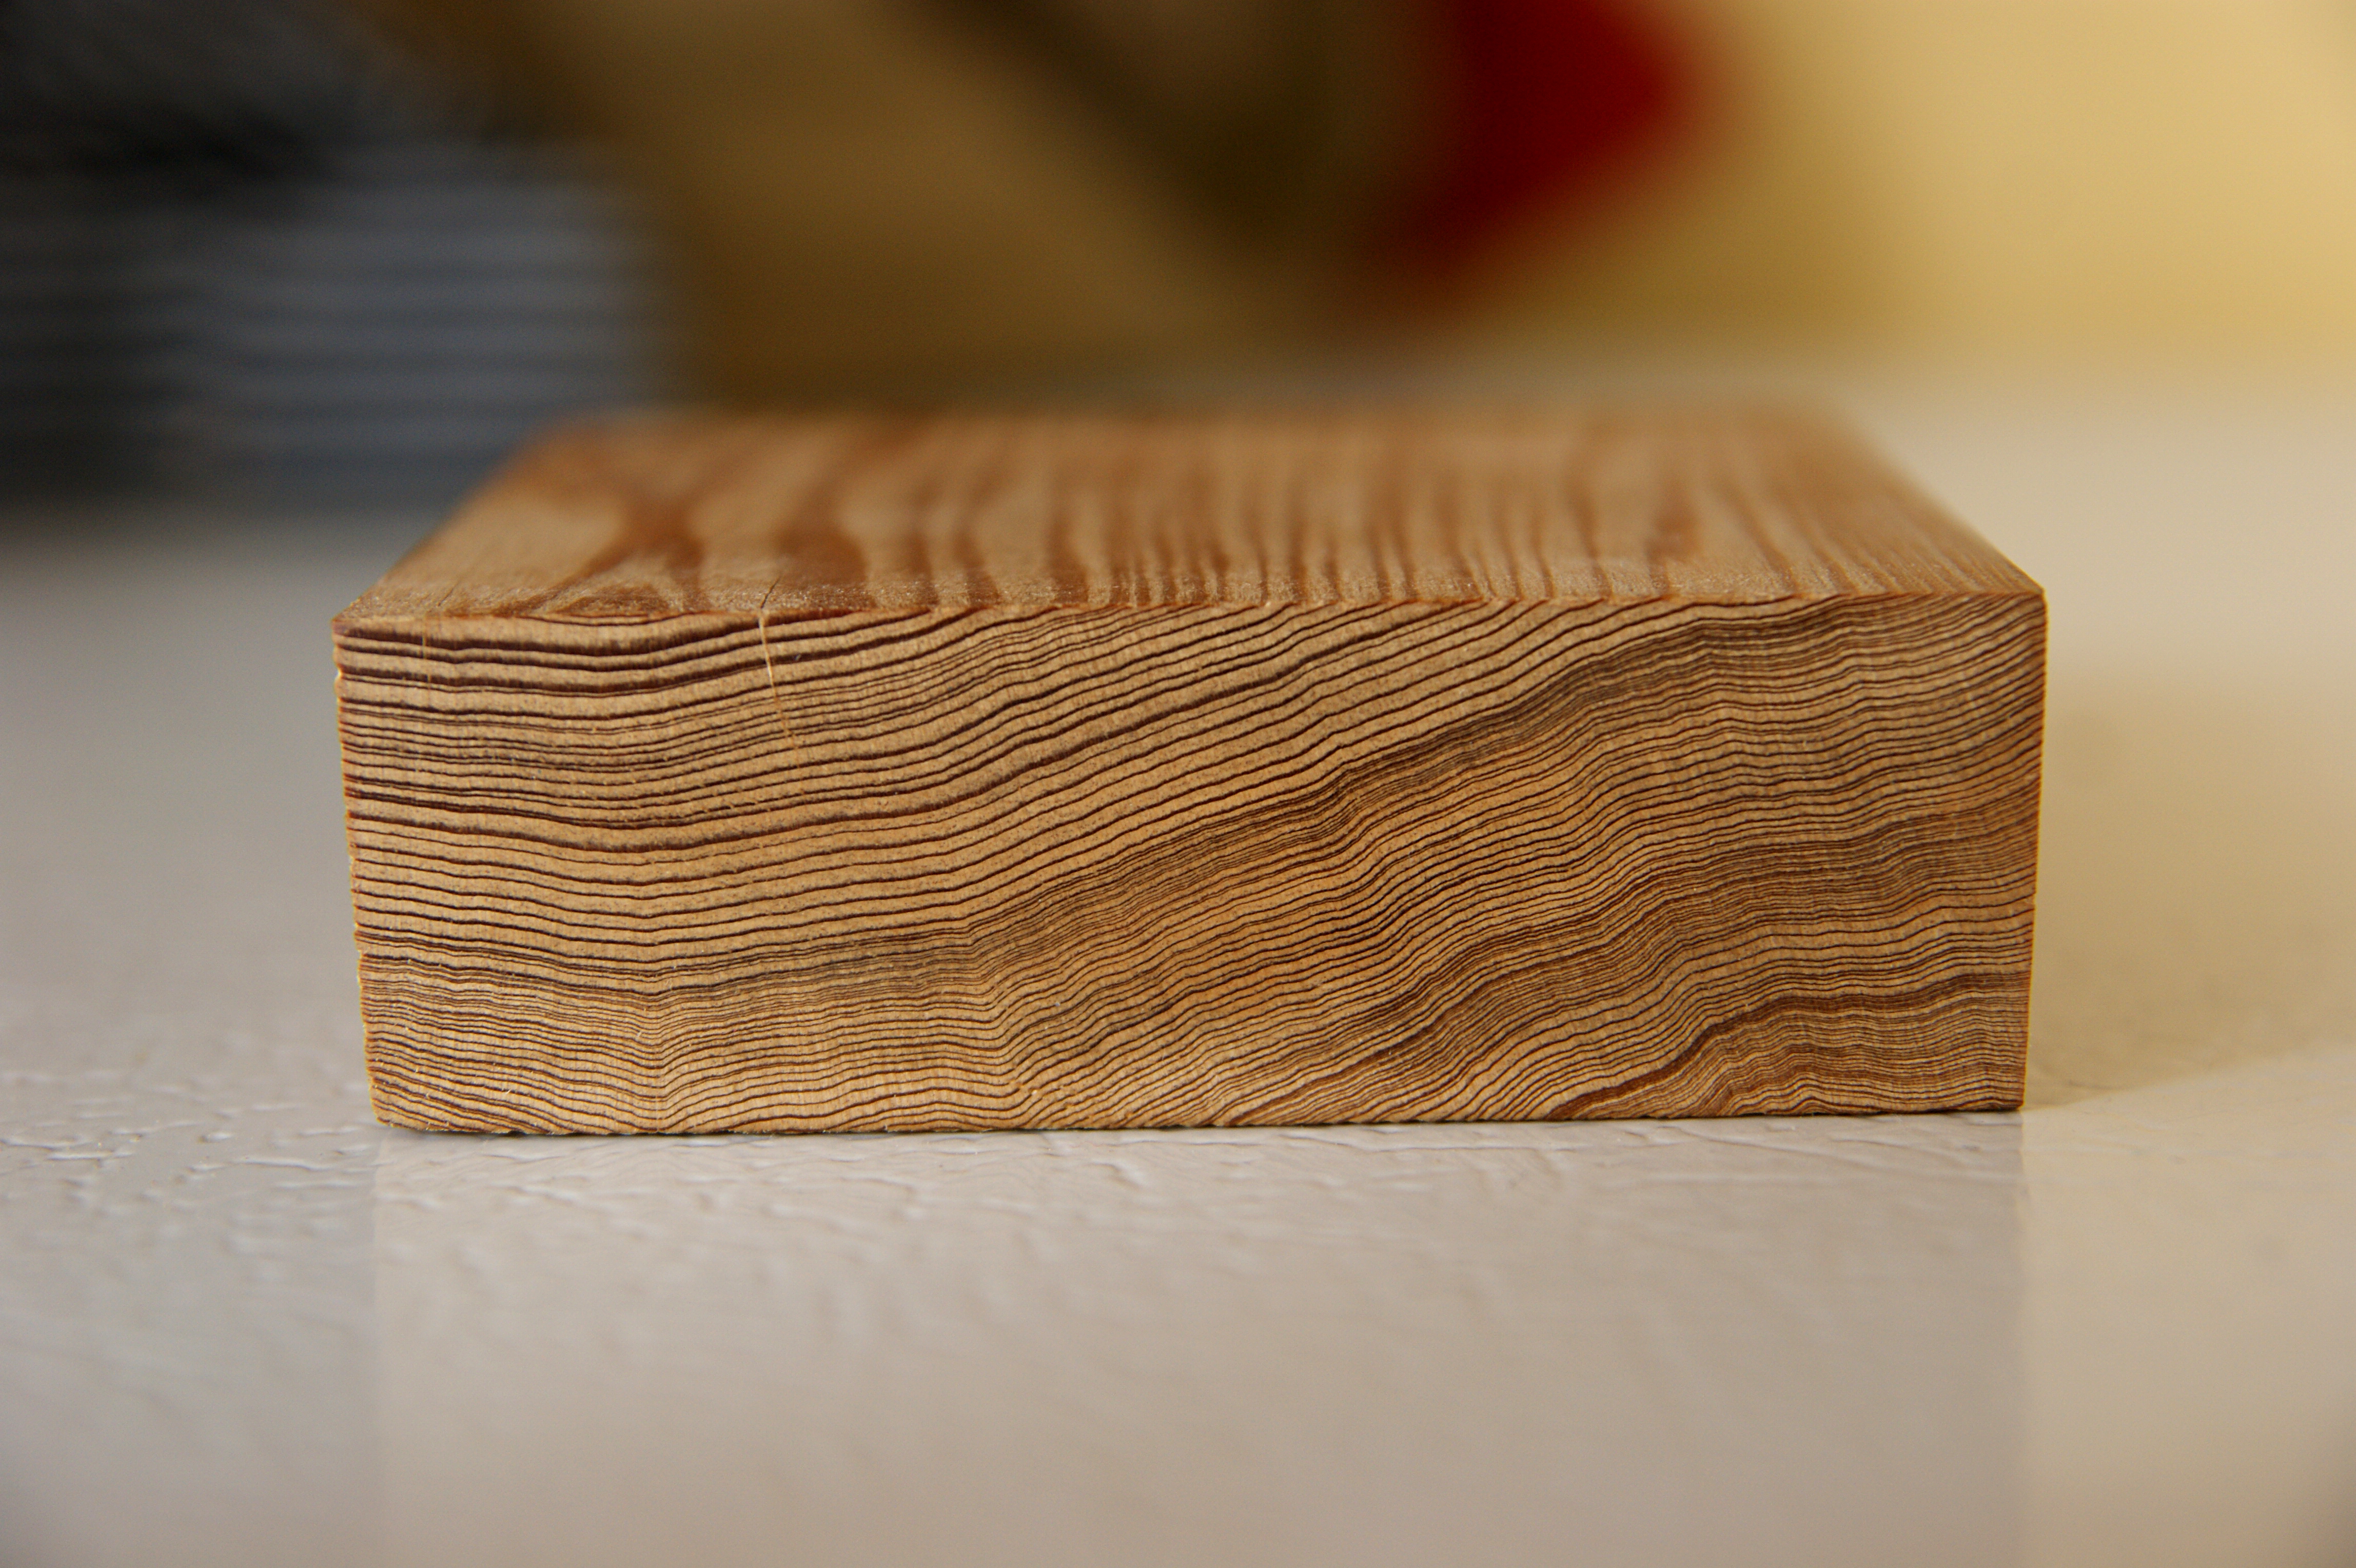 How to Make Wood Used in Construction Last Longer photo